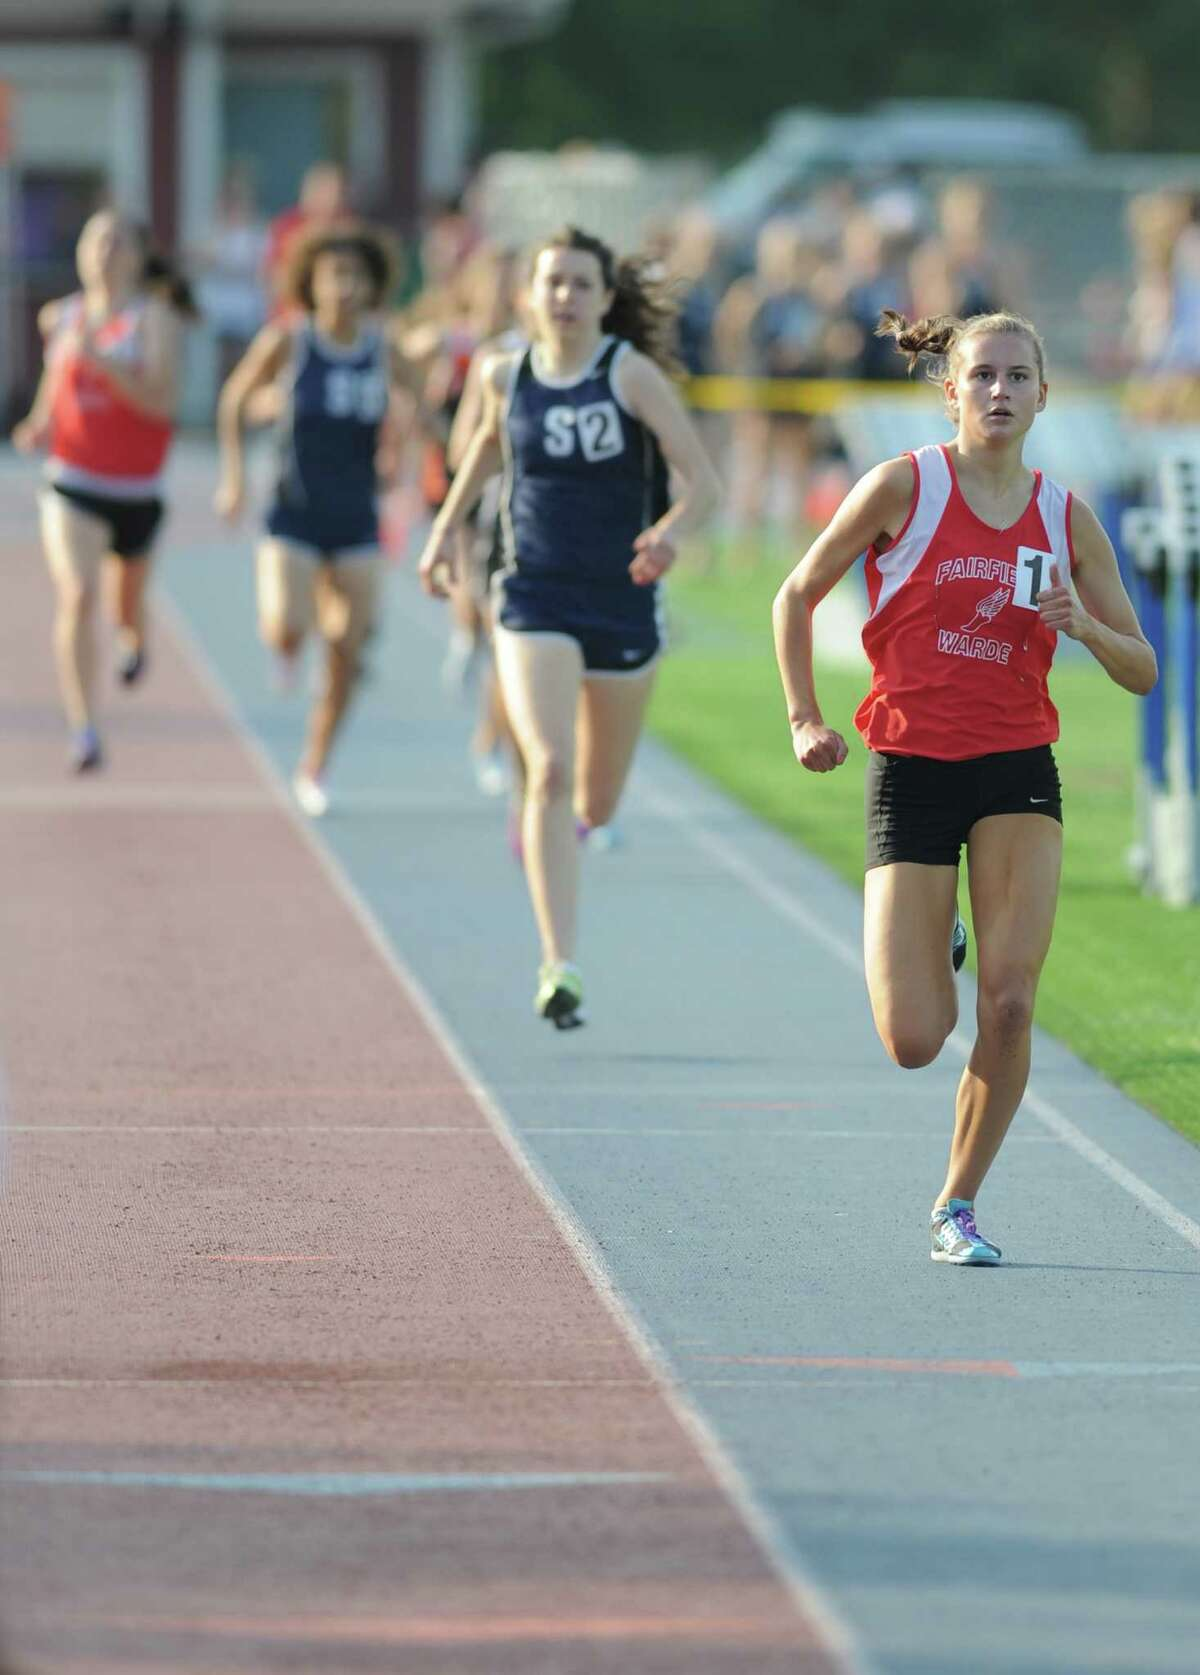 Fairfield Warde's Cate Allen wins the girls 800 meter run at the FCIAC Track and Field Championships at Danbury High School in Danbury, Conn. on Tuesday, May 21, 2013.